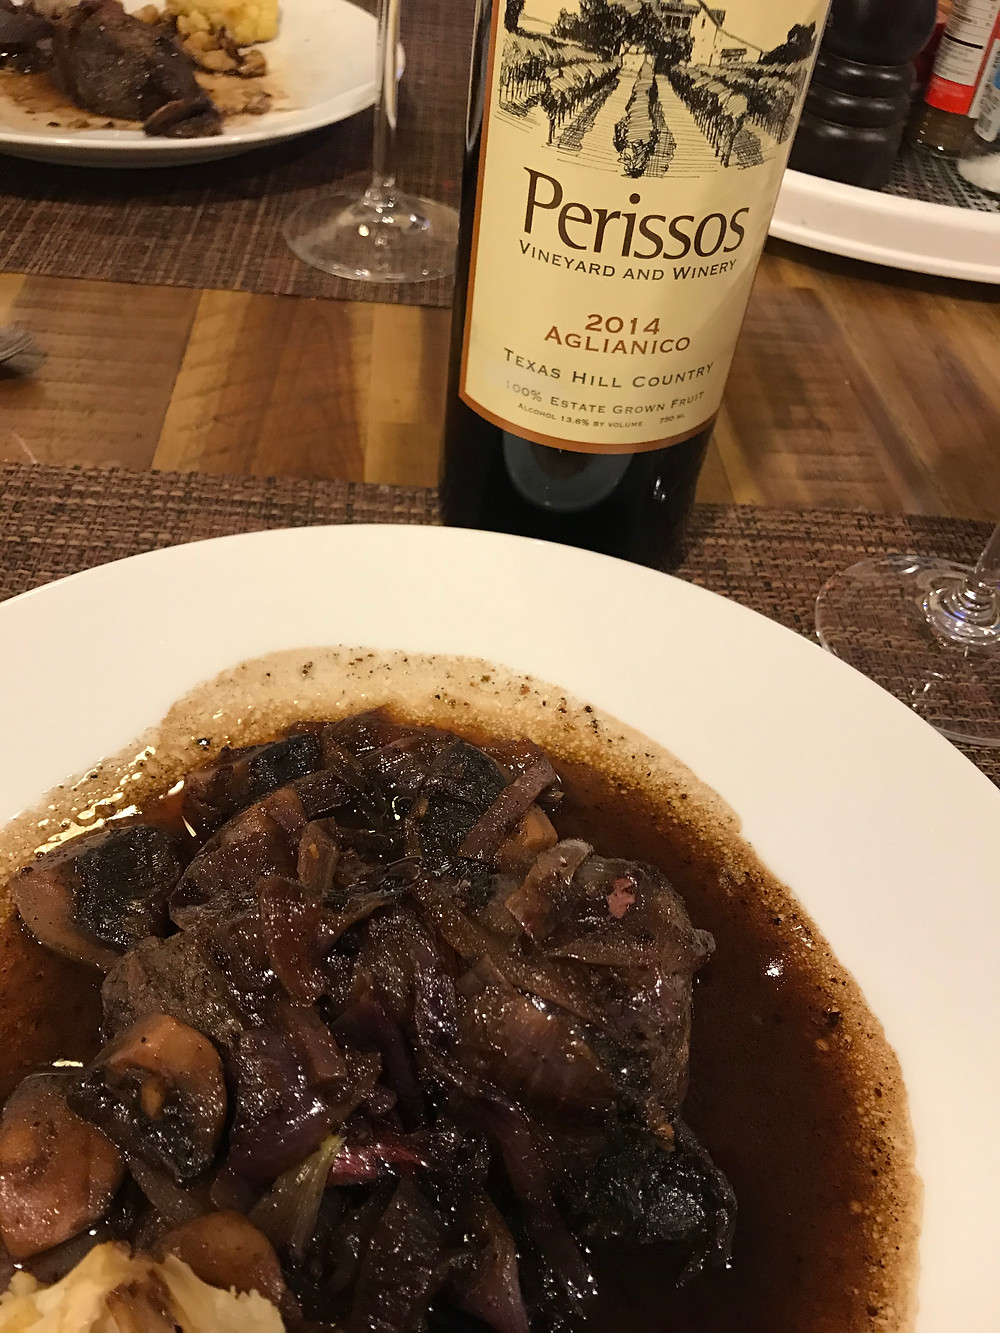 It would be only half a meal to serve this without wine and 2014 Perissos Aglianico is at its peak.